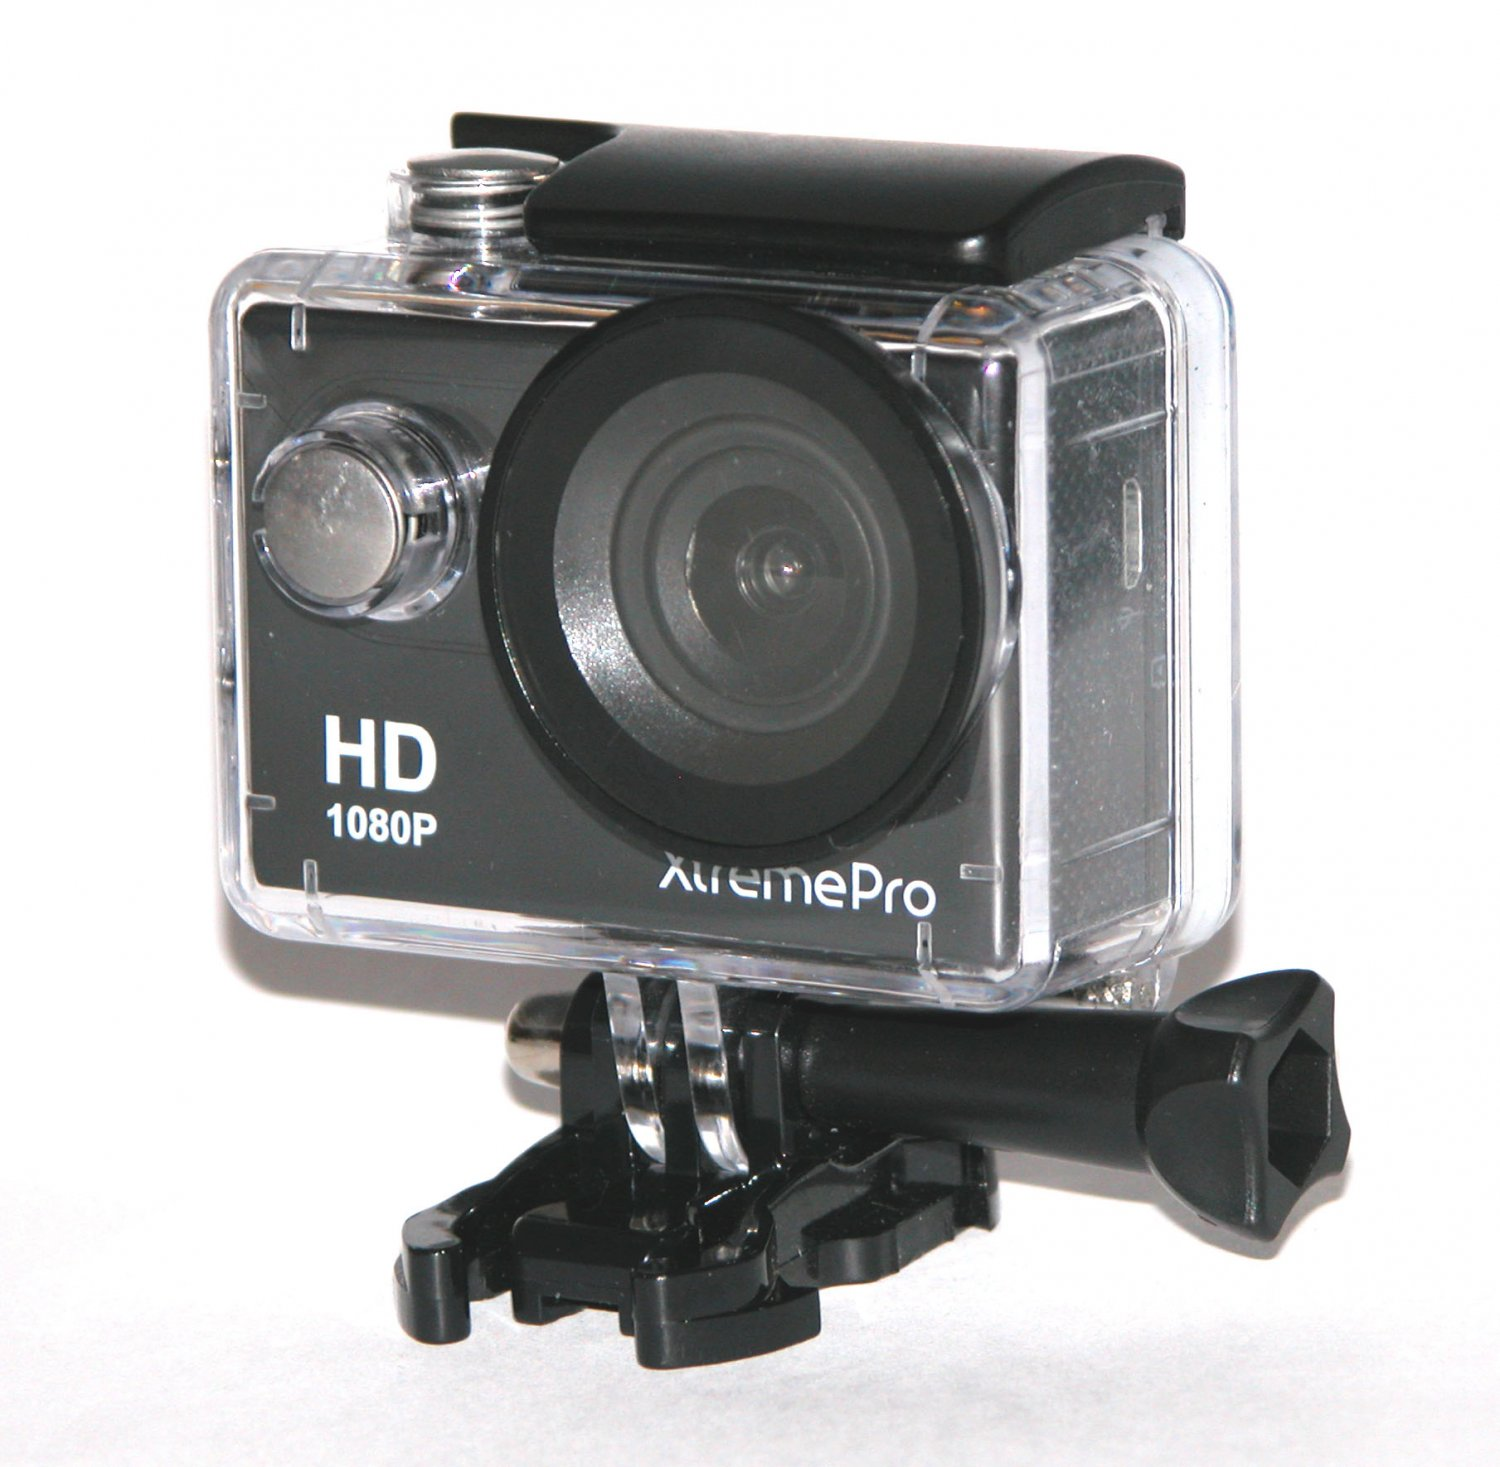 XtremePro 1080HD Camcorders Sport Action Camera Water-Resistant Housing